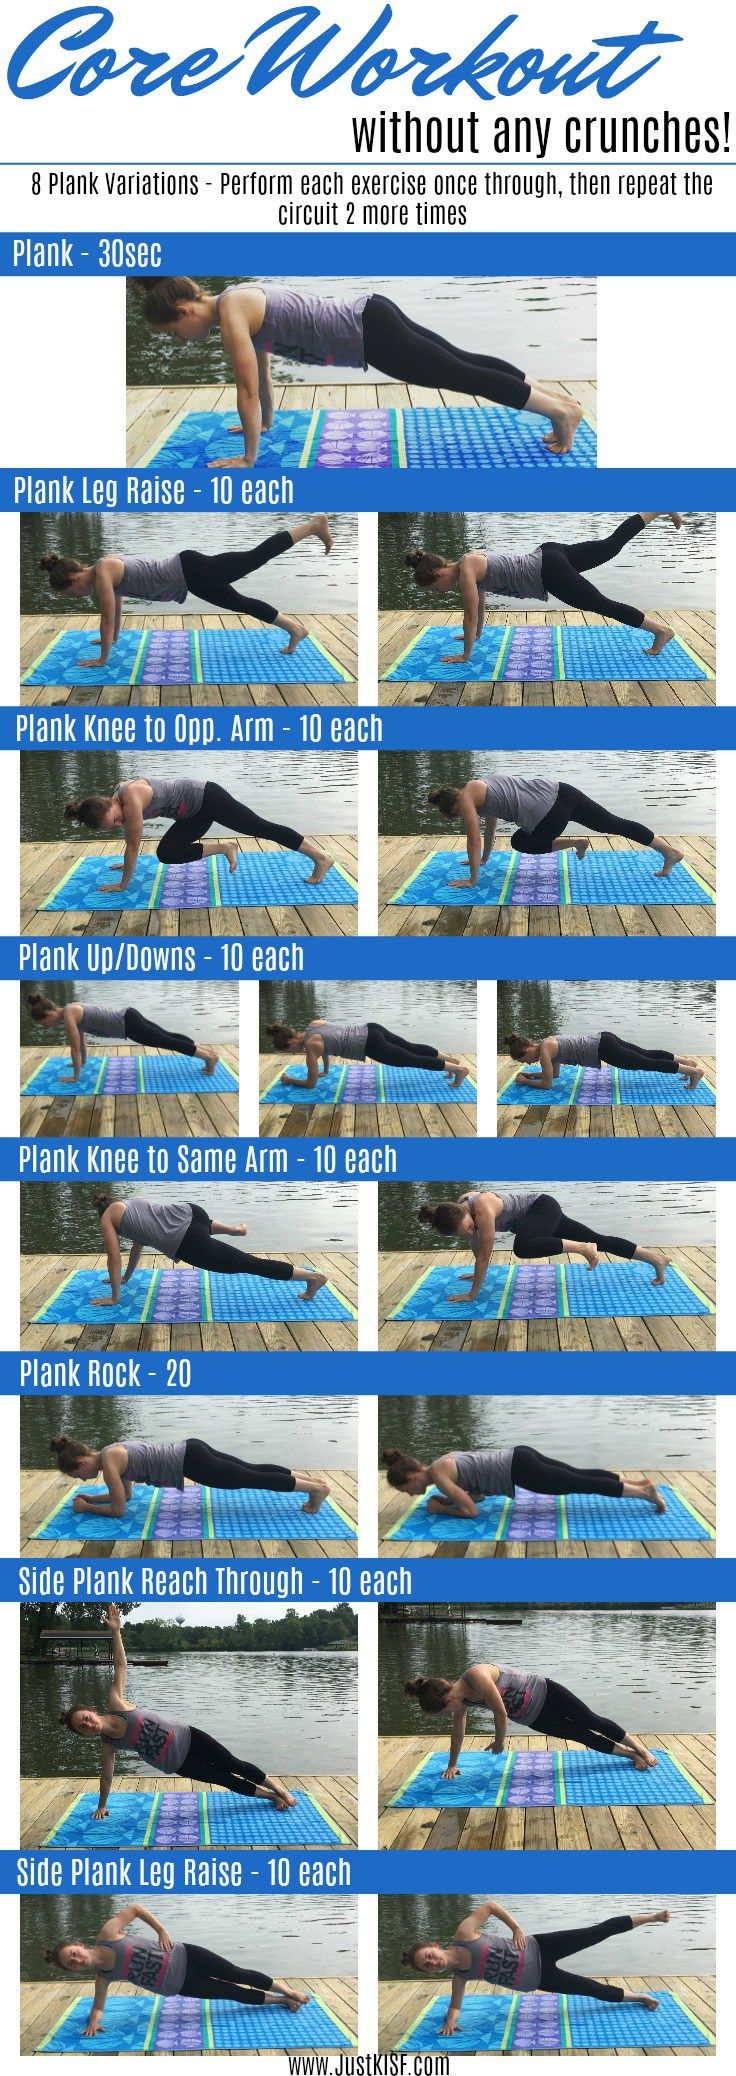 Check out this core July workout of the month without any crunches! 8 different plank variations to target all parts of your core!